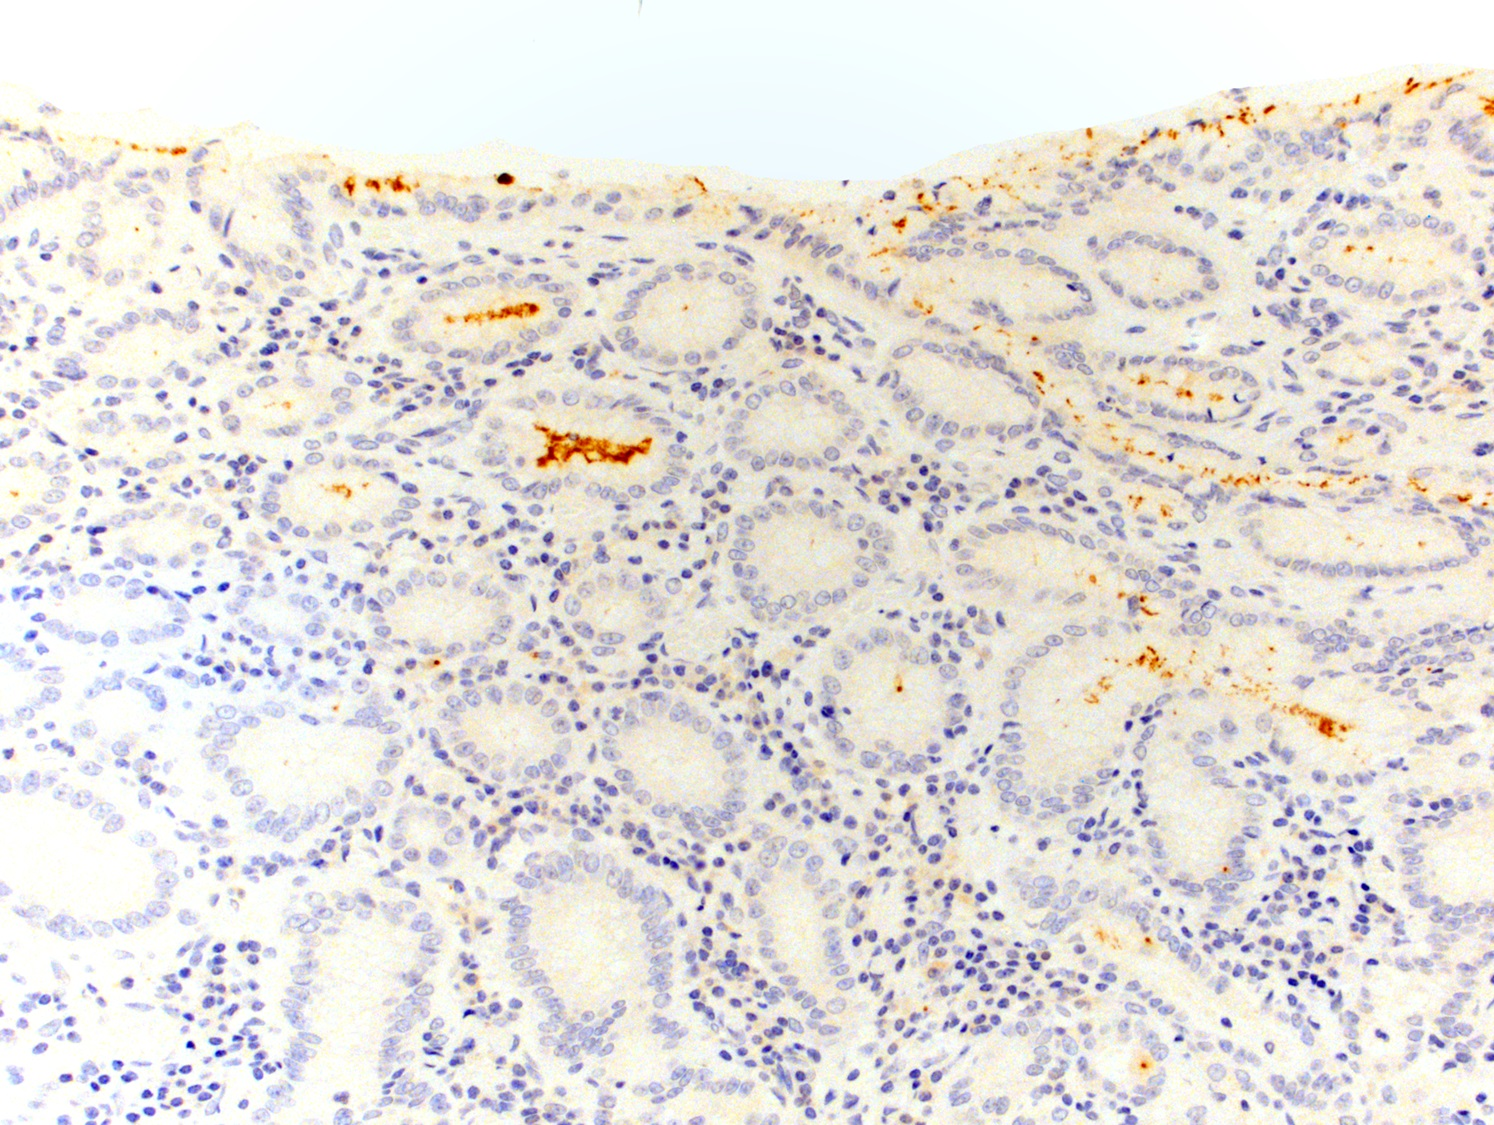 Immunostain for <i>H. pylori</i>